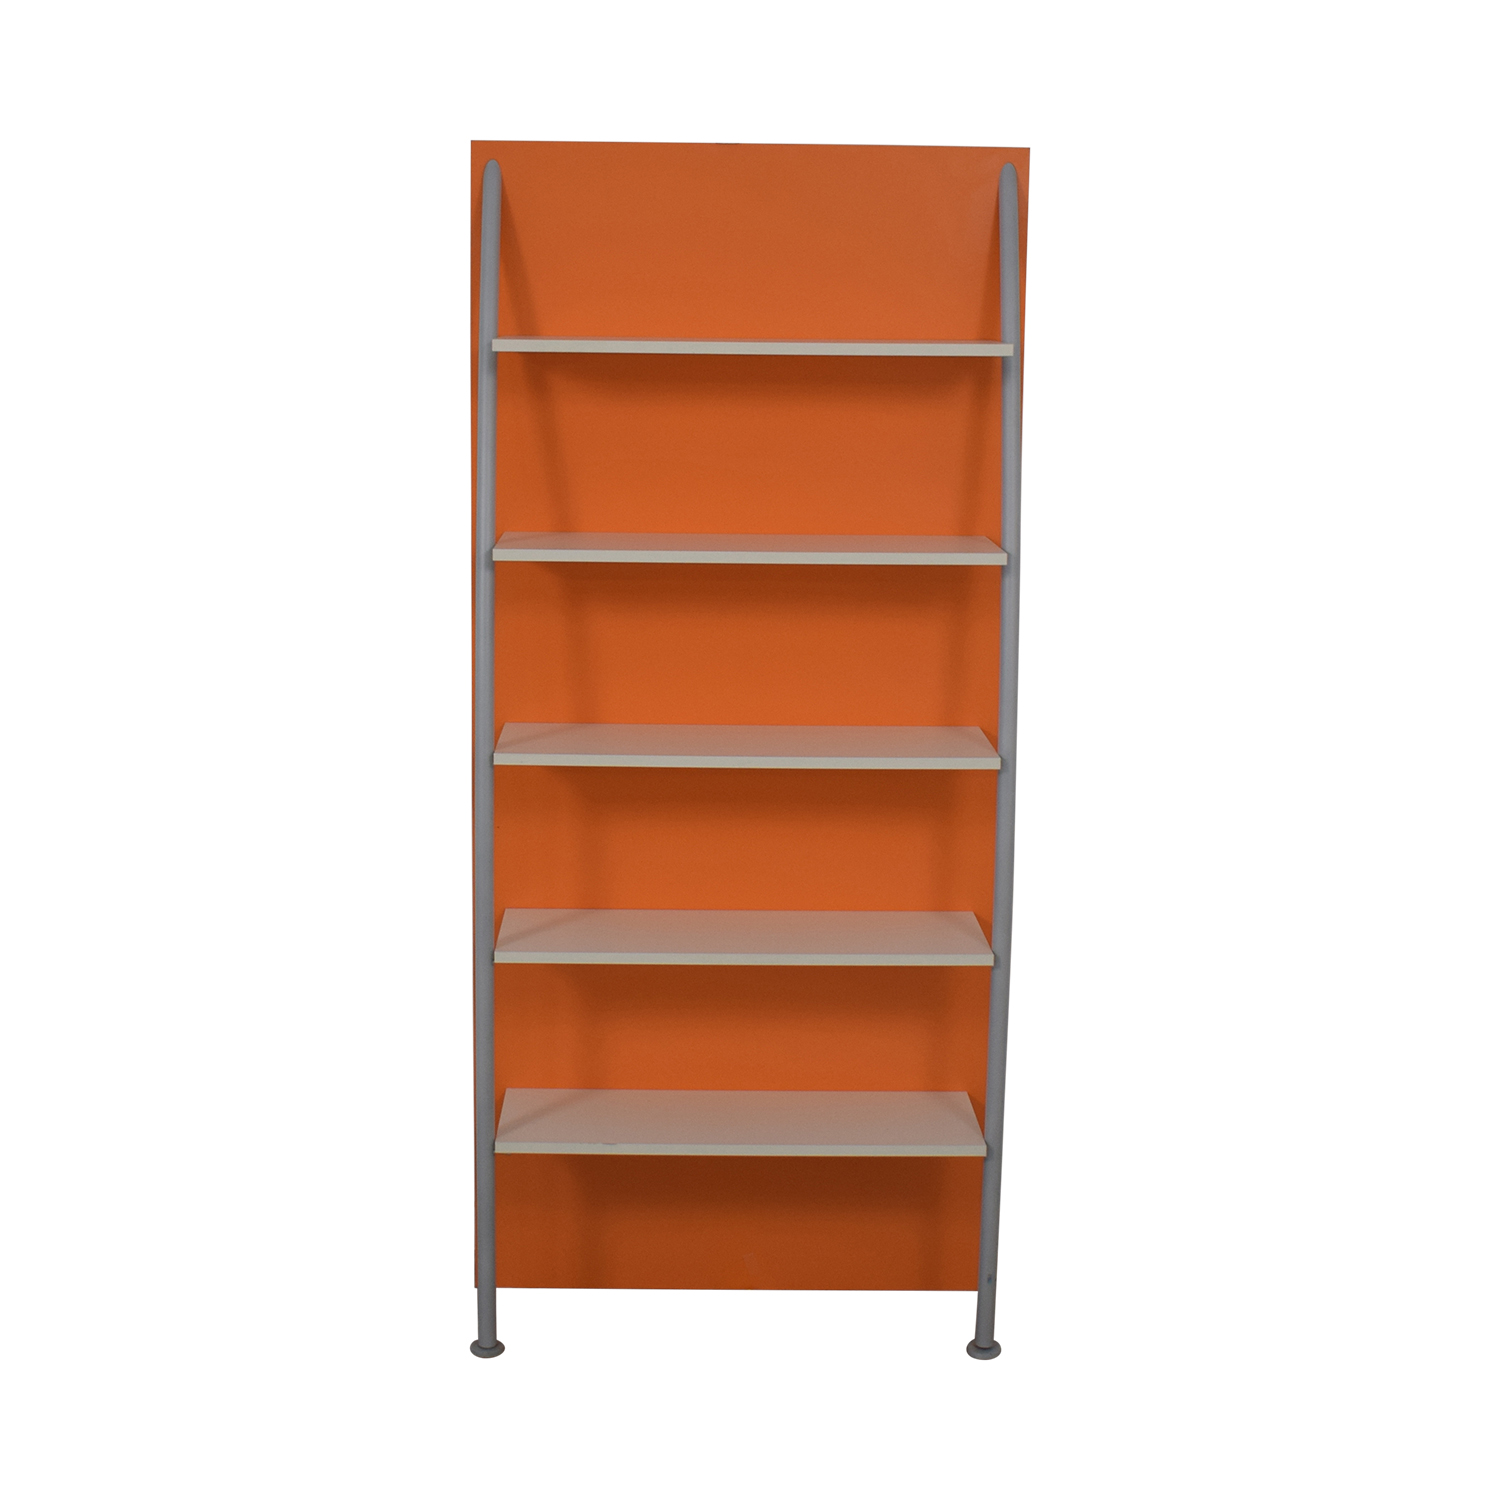 Five Shelf Bookcase for sale